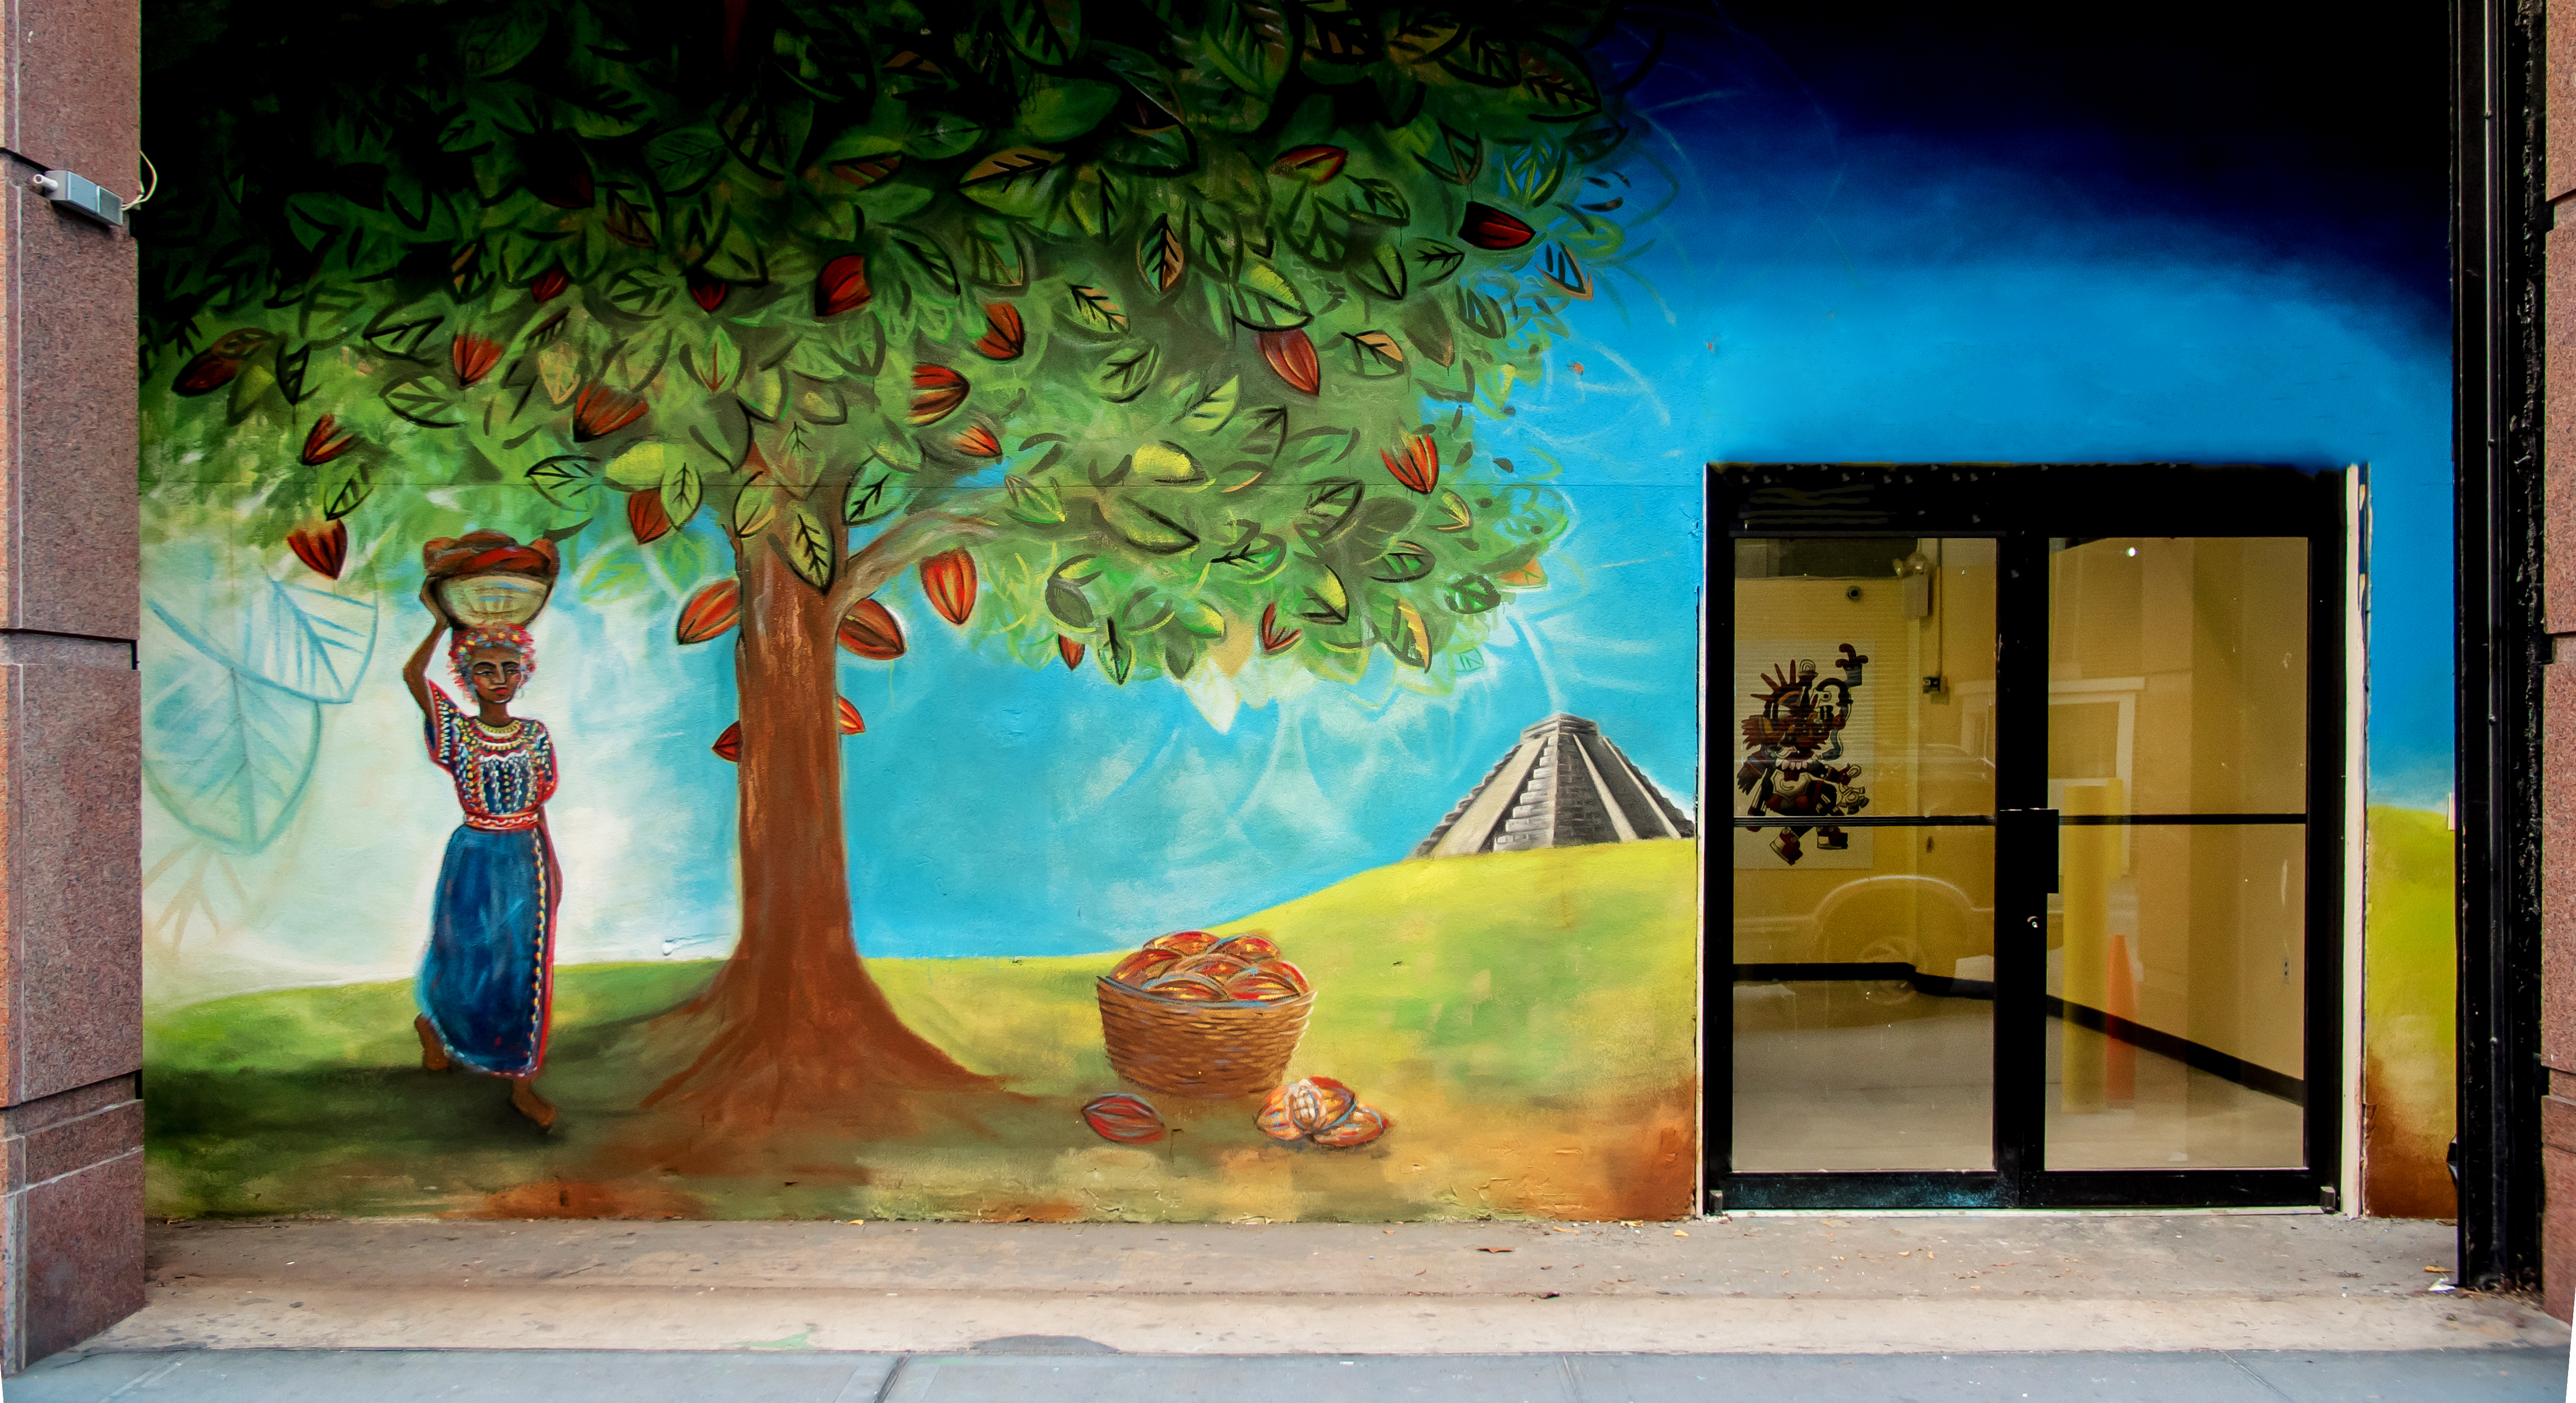 They museum commissioned a local Brooklyn artist to paint this outdoor mural, based on the Yucatan.